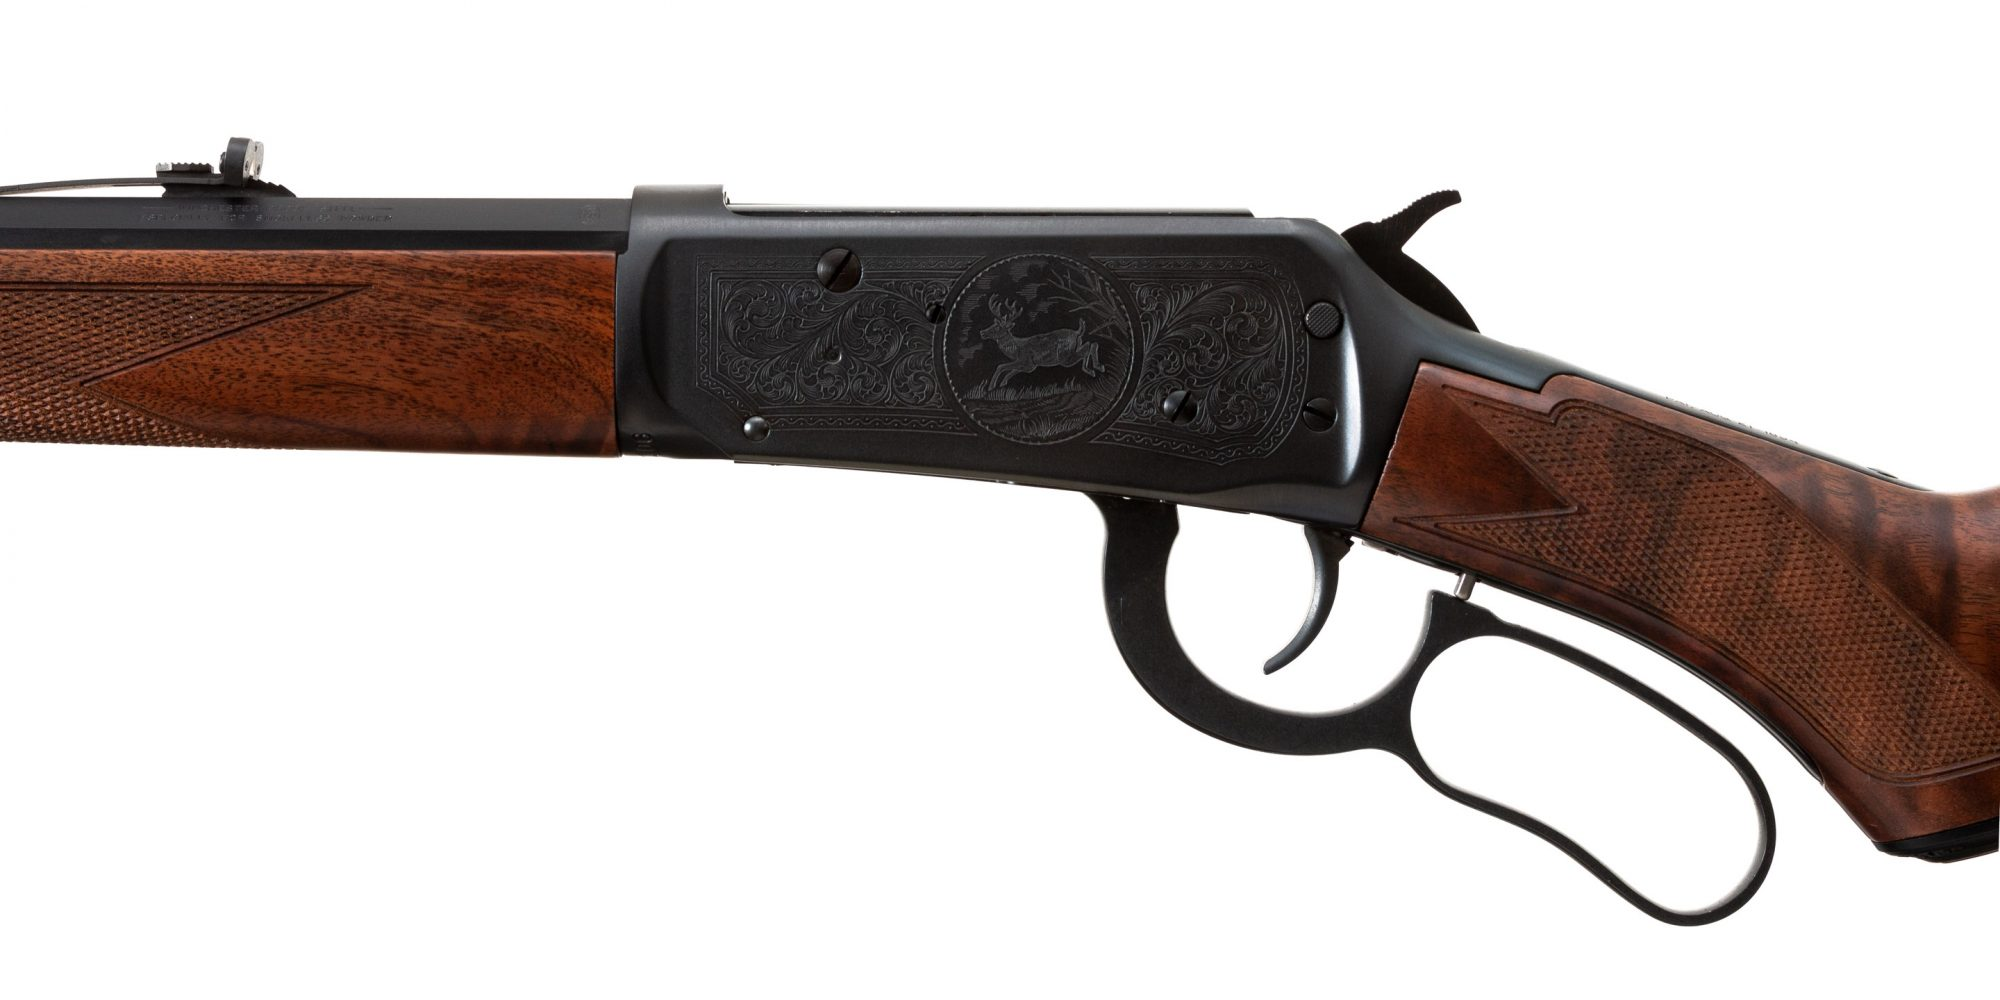 Photo of a pre-owned Winchester Model 94 Limited Edition Grade I Centennial Rifle, for sale by Turnbull Restoration of Bloomfield, NY